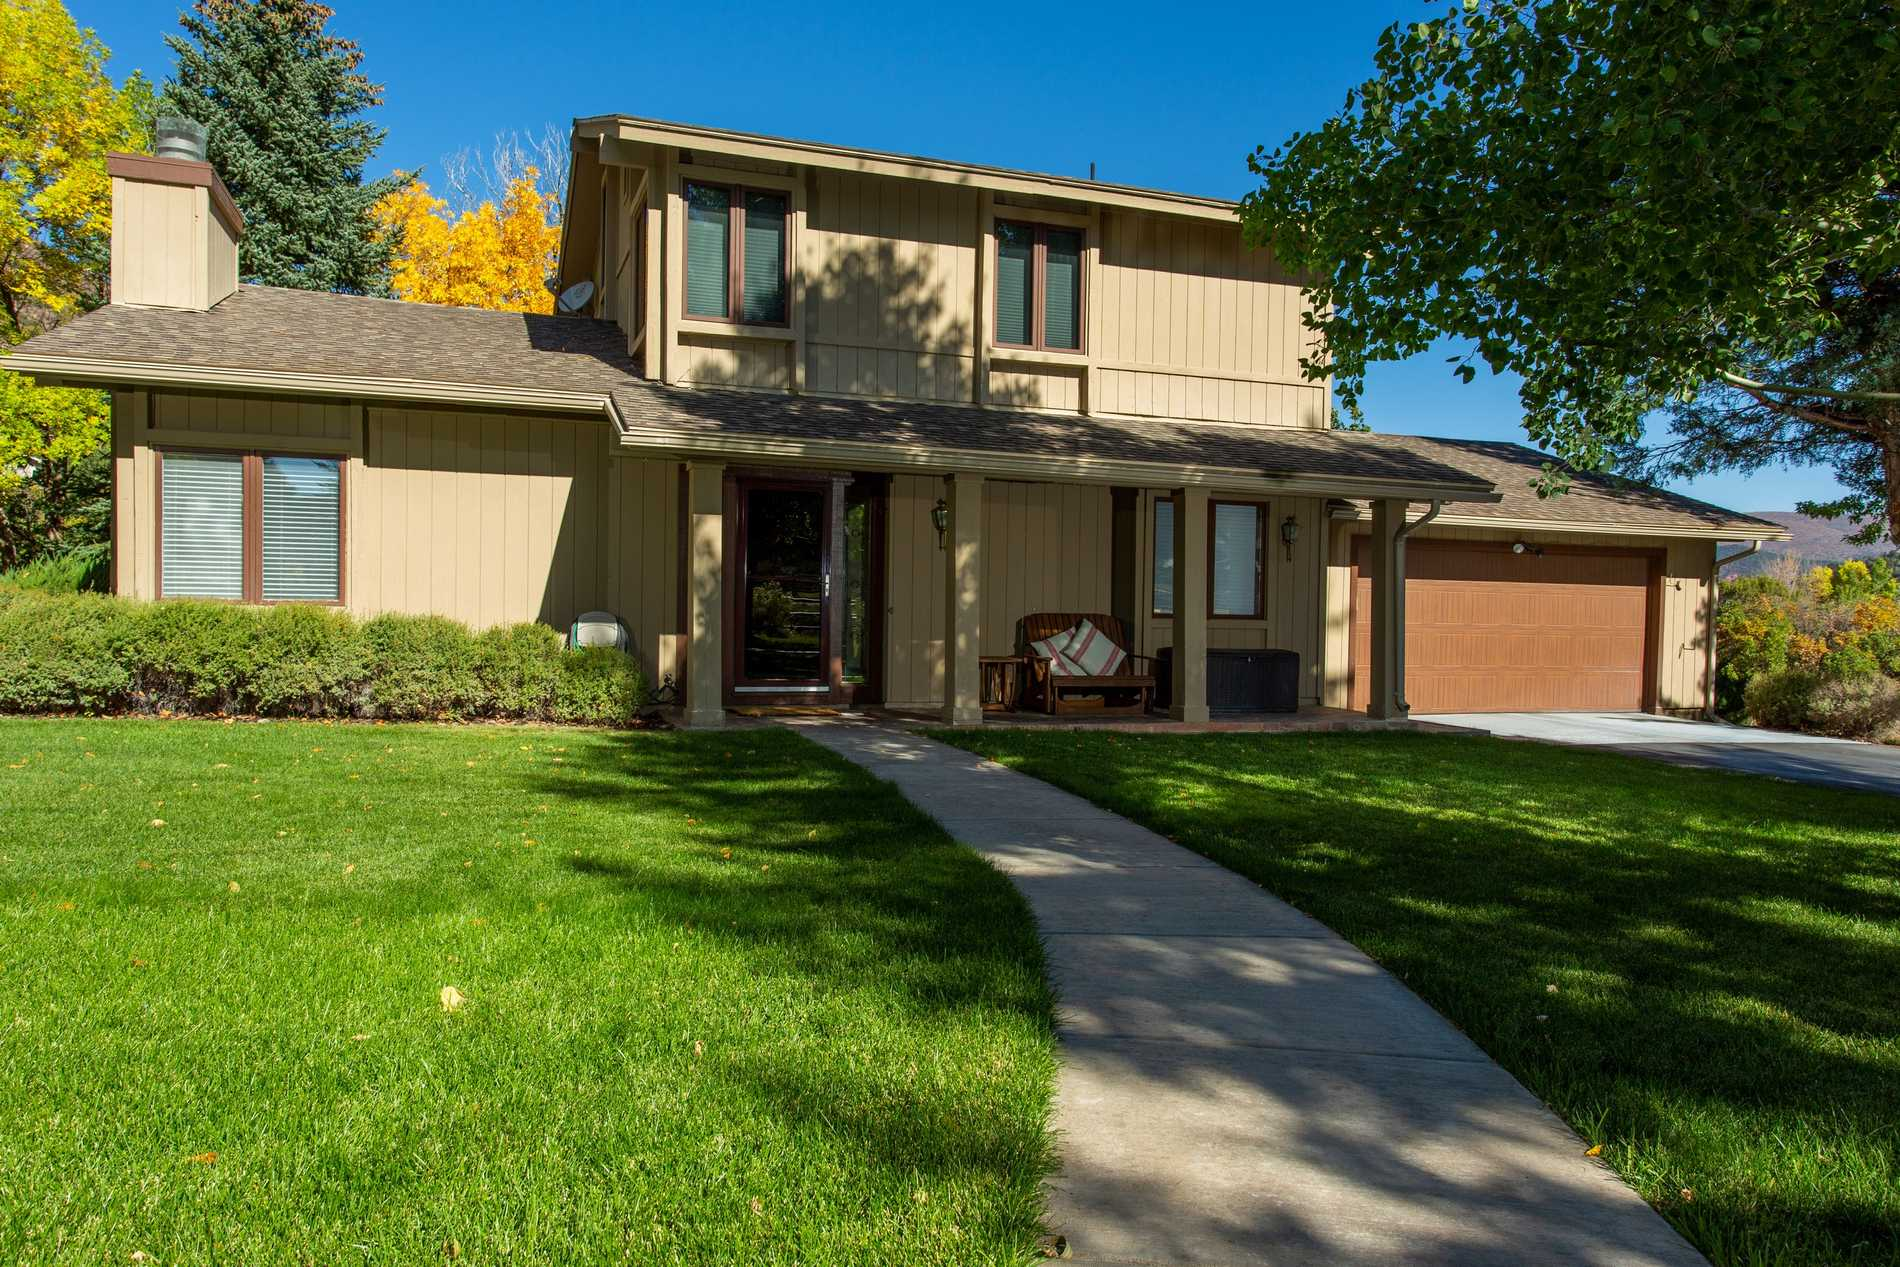 3892 Country Road 117 Glenwood Springs Photo 2